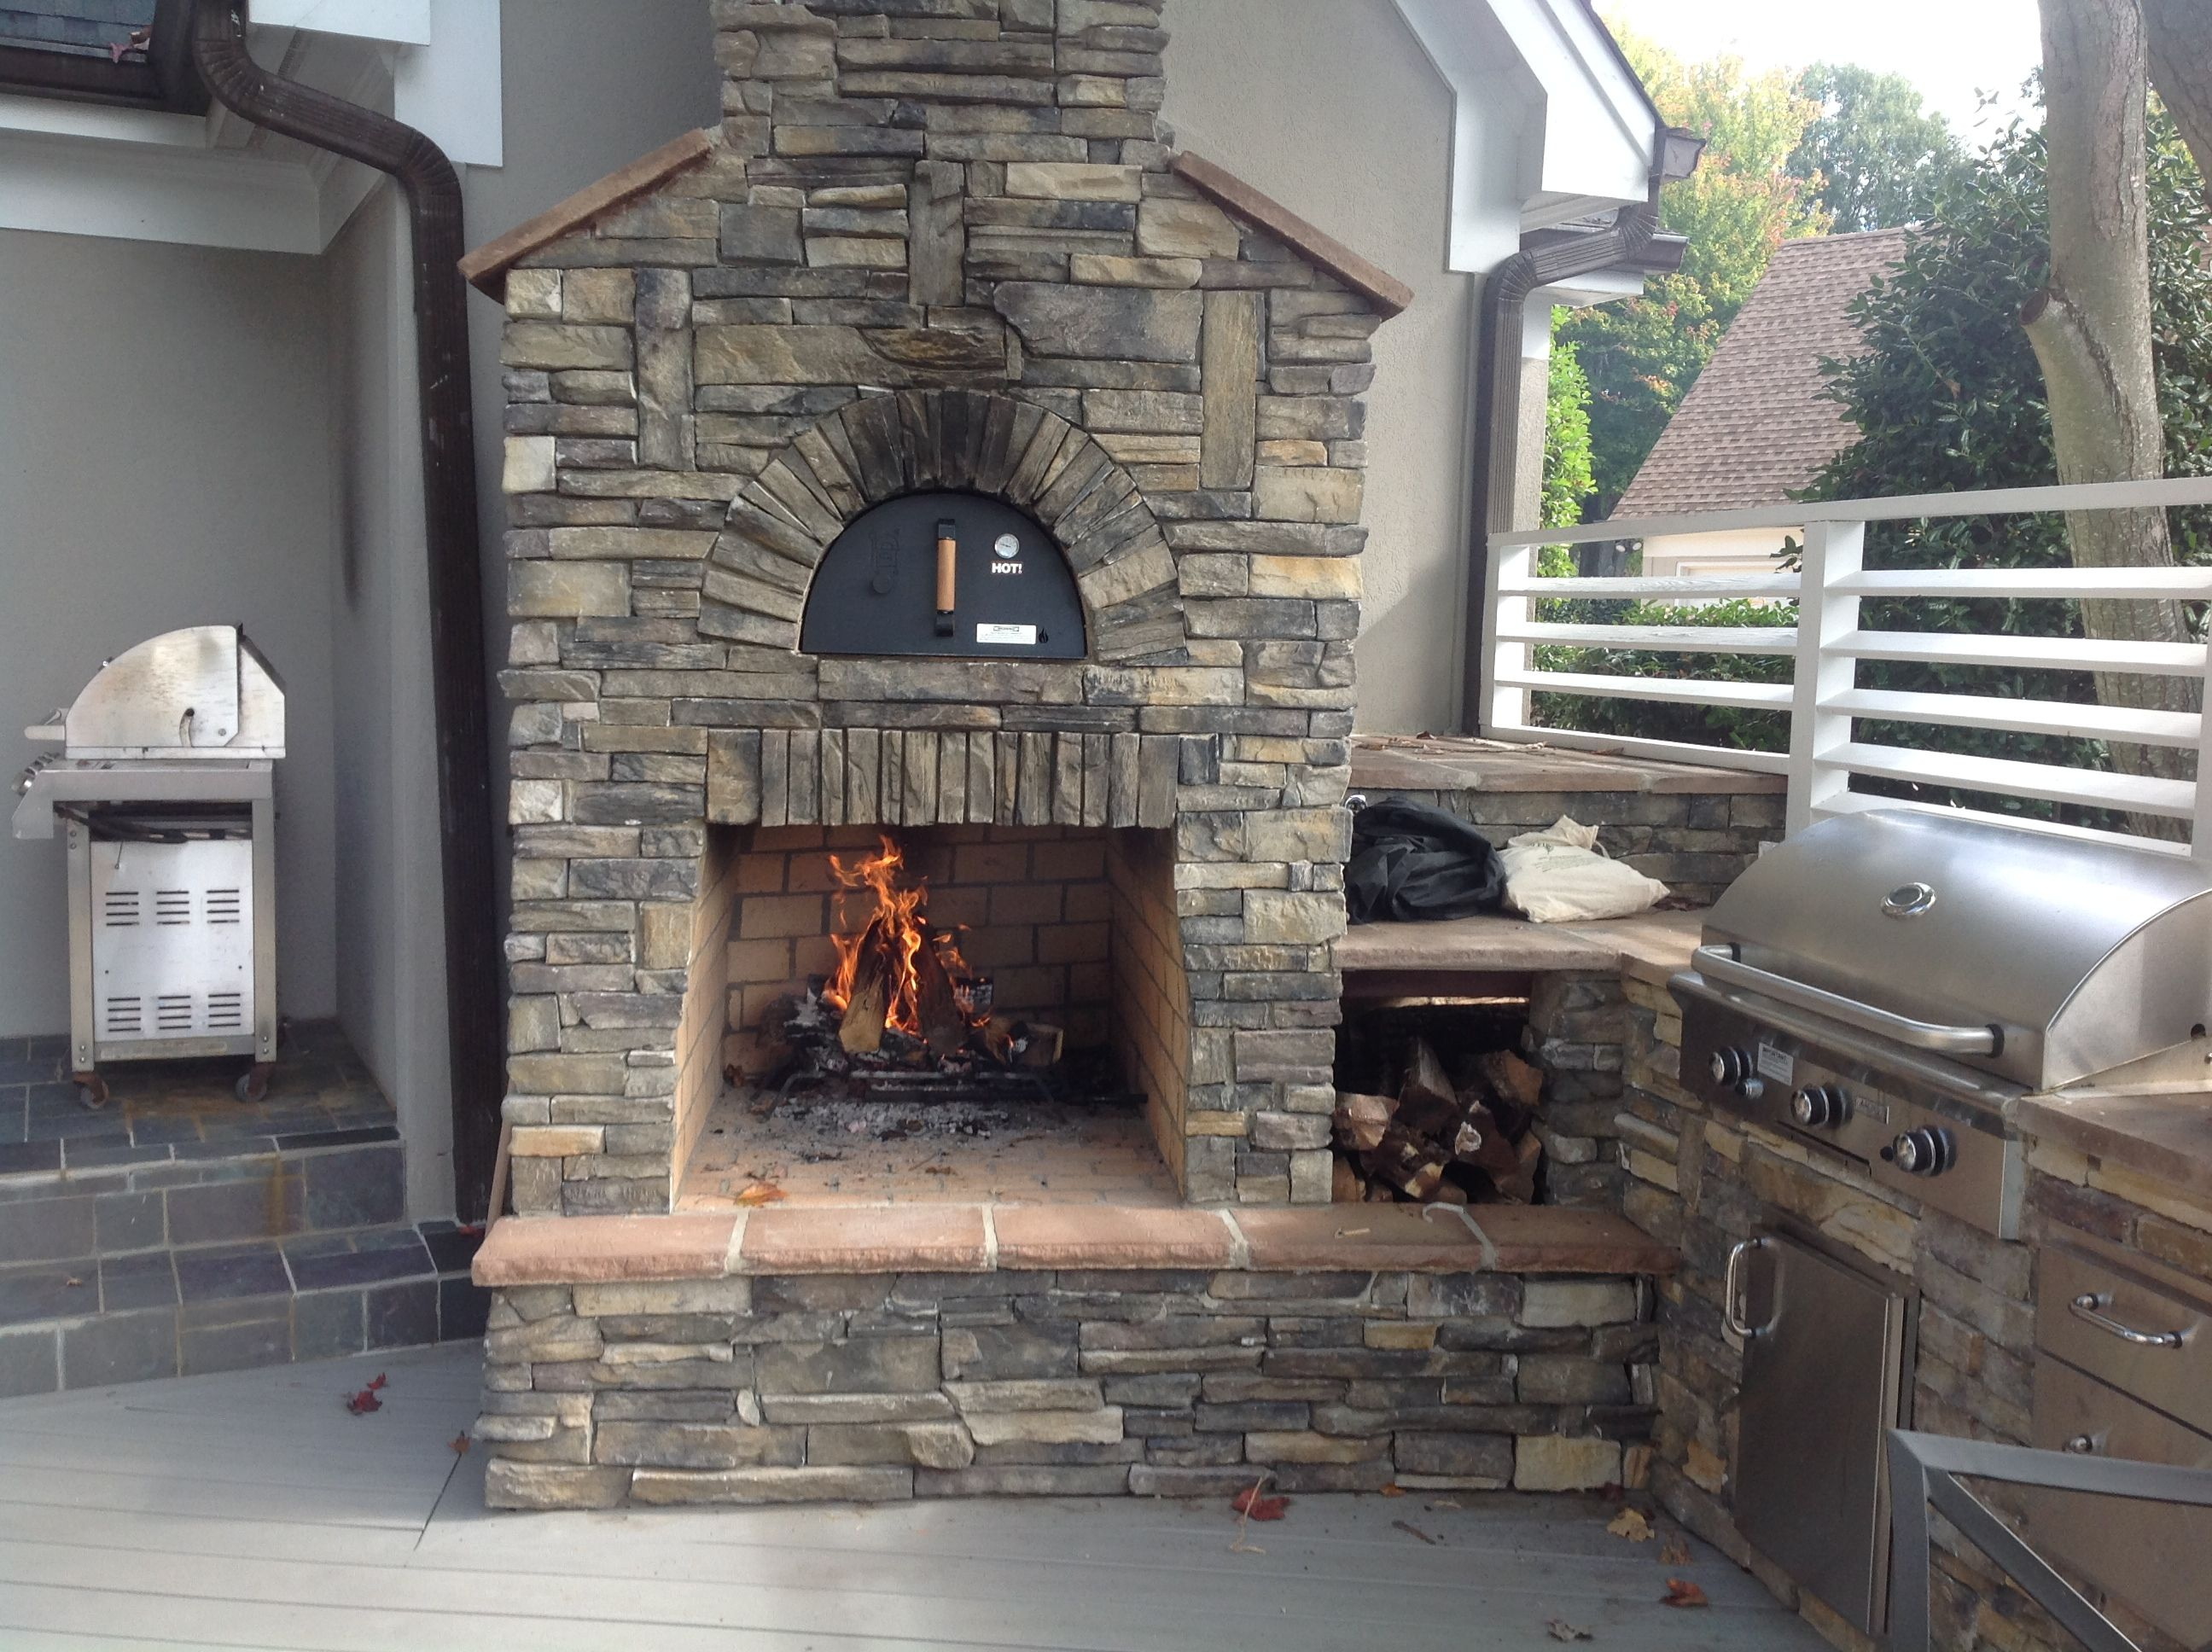 Custom Pizza Oven Integrated Into An Outdoor Fireplace And Attached To An Out